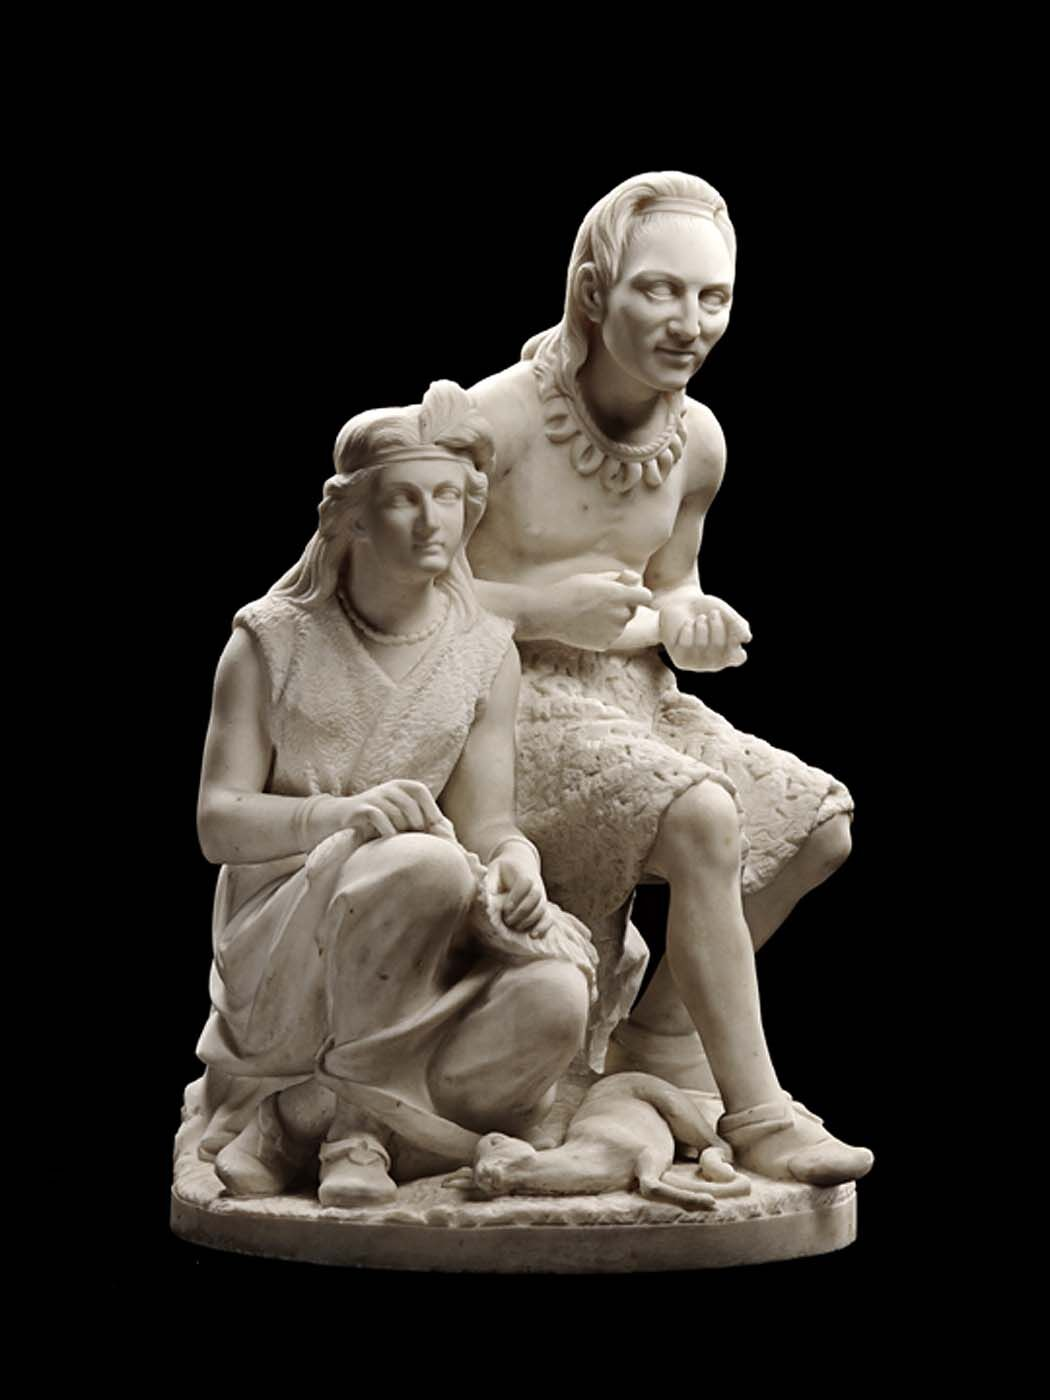 Edmonia Lewis, Old Arrow Maker, 1872. Courtesy of the Smithsonian American Art Museum.